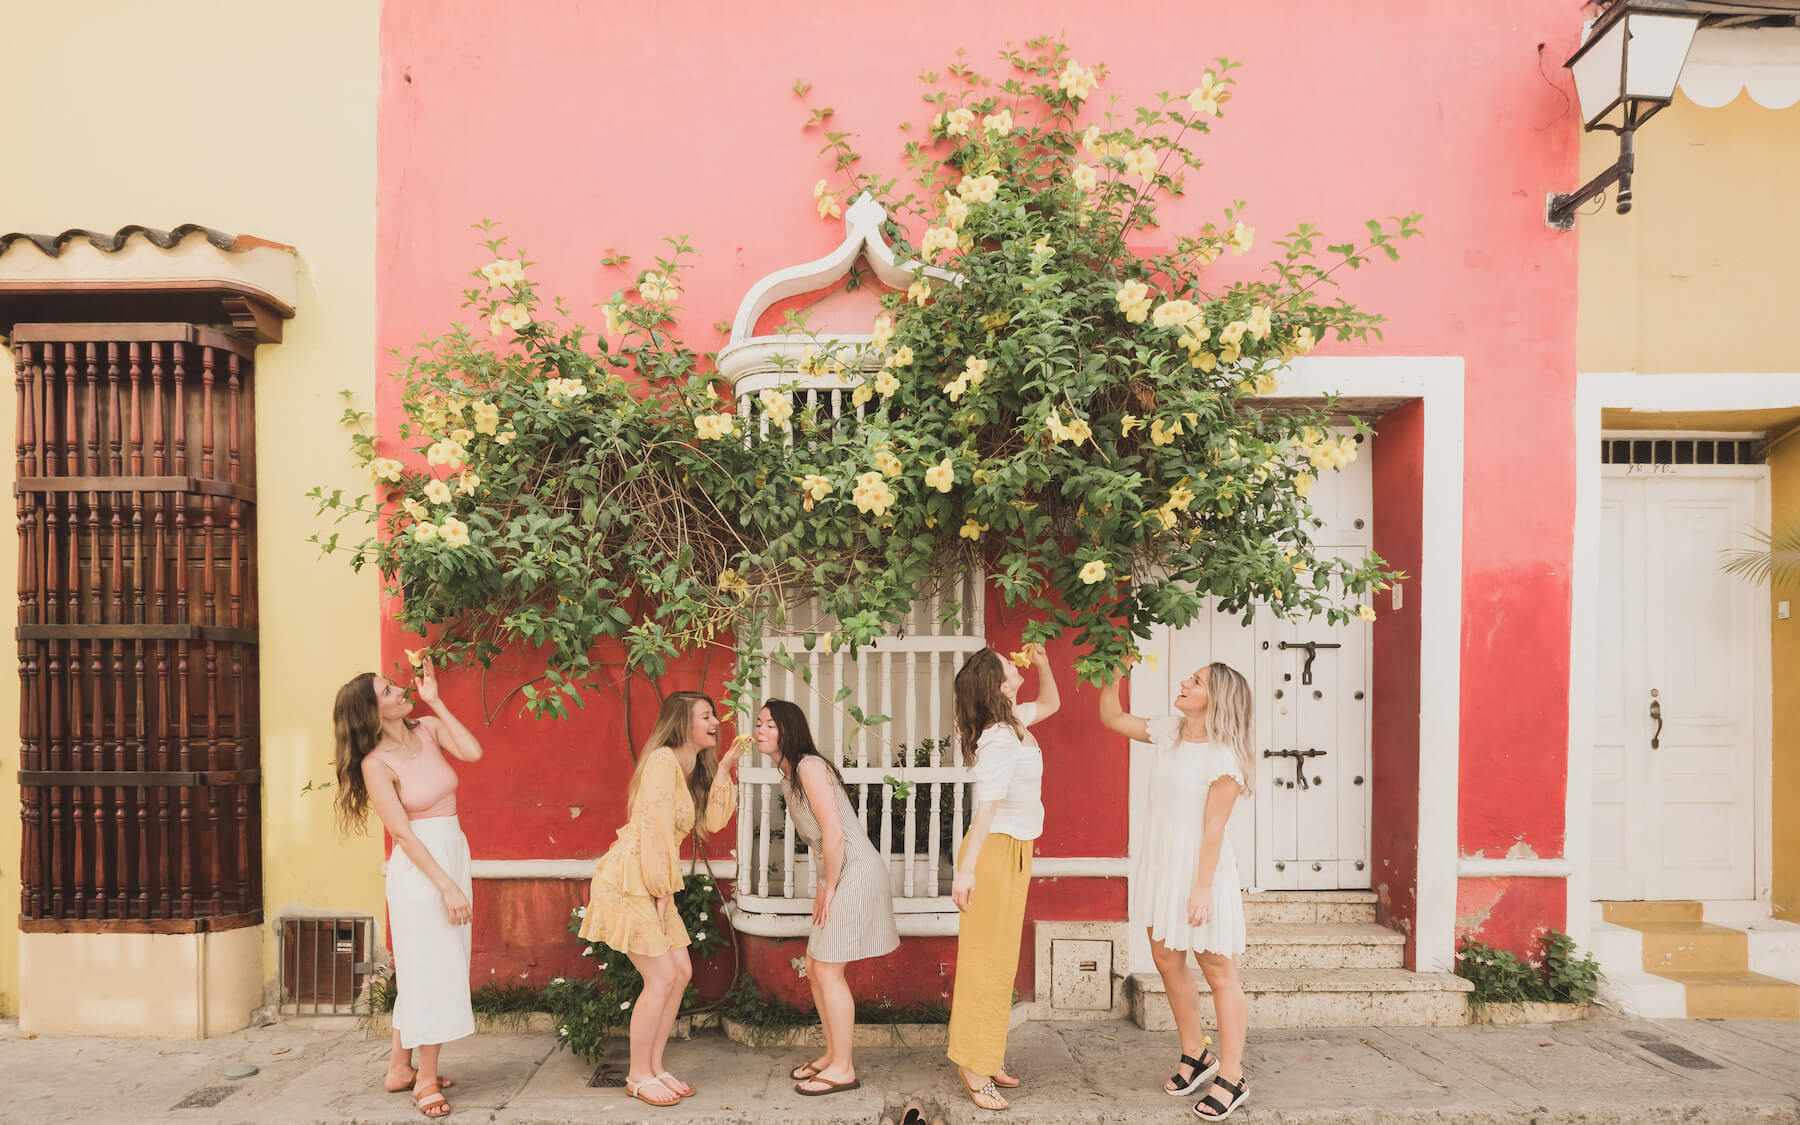 5 girlfriends having fun and smelling flowers on the streets of Cartagena, Colombia